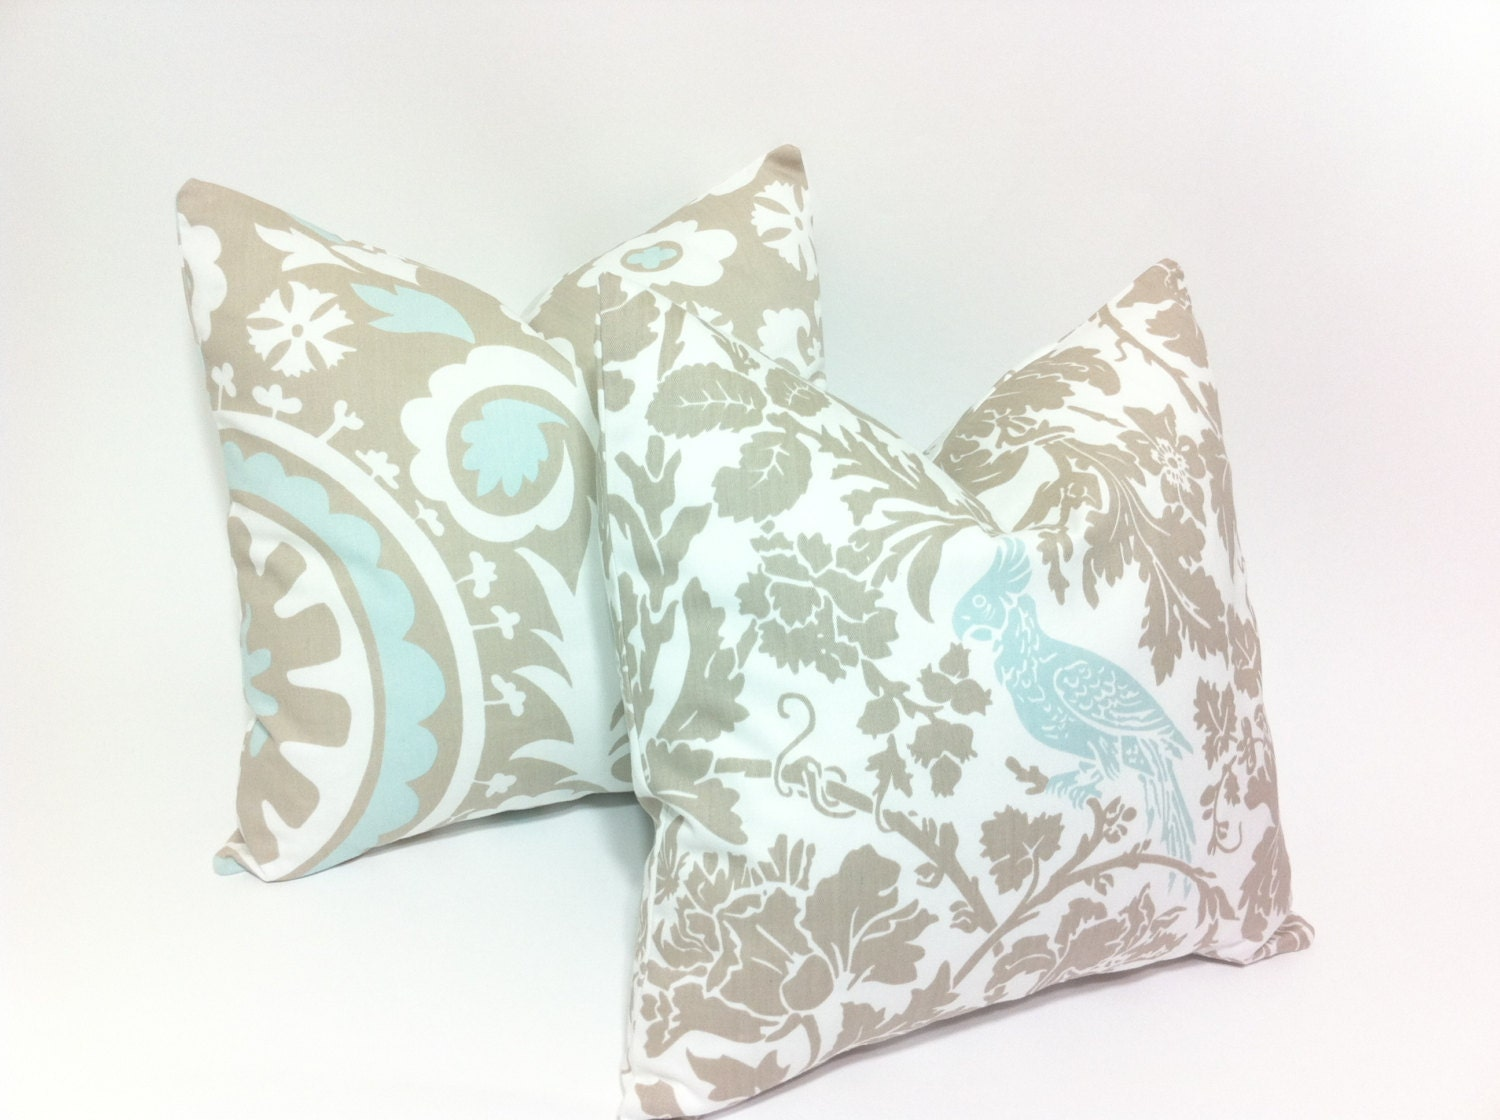 Light Blue and Taupe Decorative Throw Pillow Covers Bird